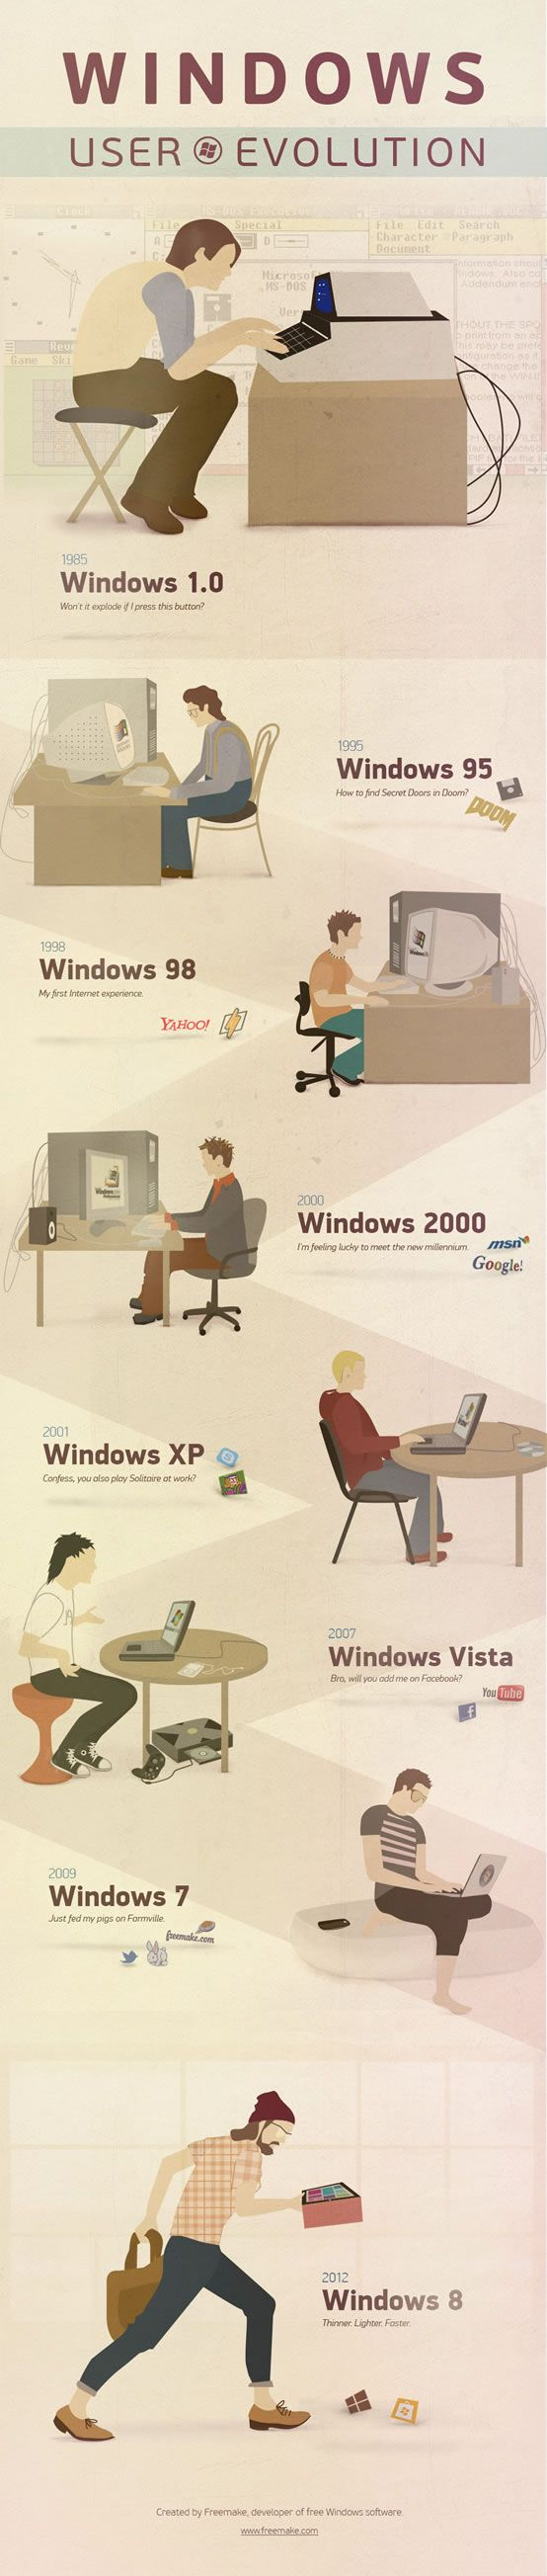 The evolution of Microsoft @Windows over the years. Very cool infographic from Freemake!